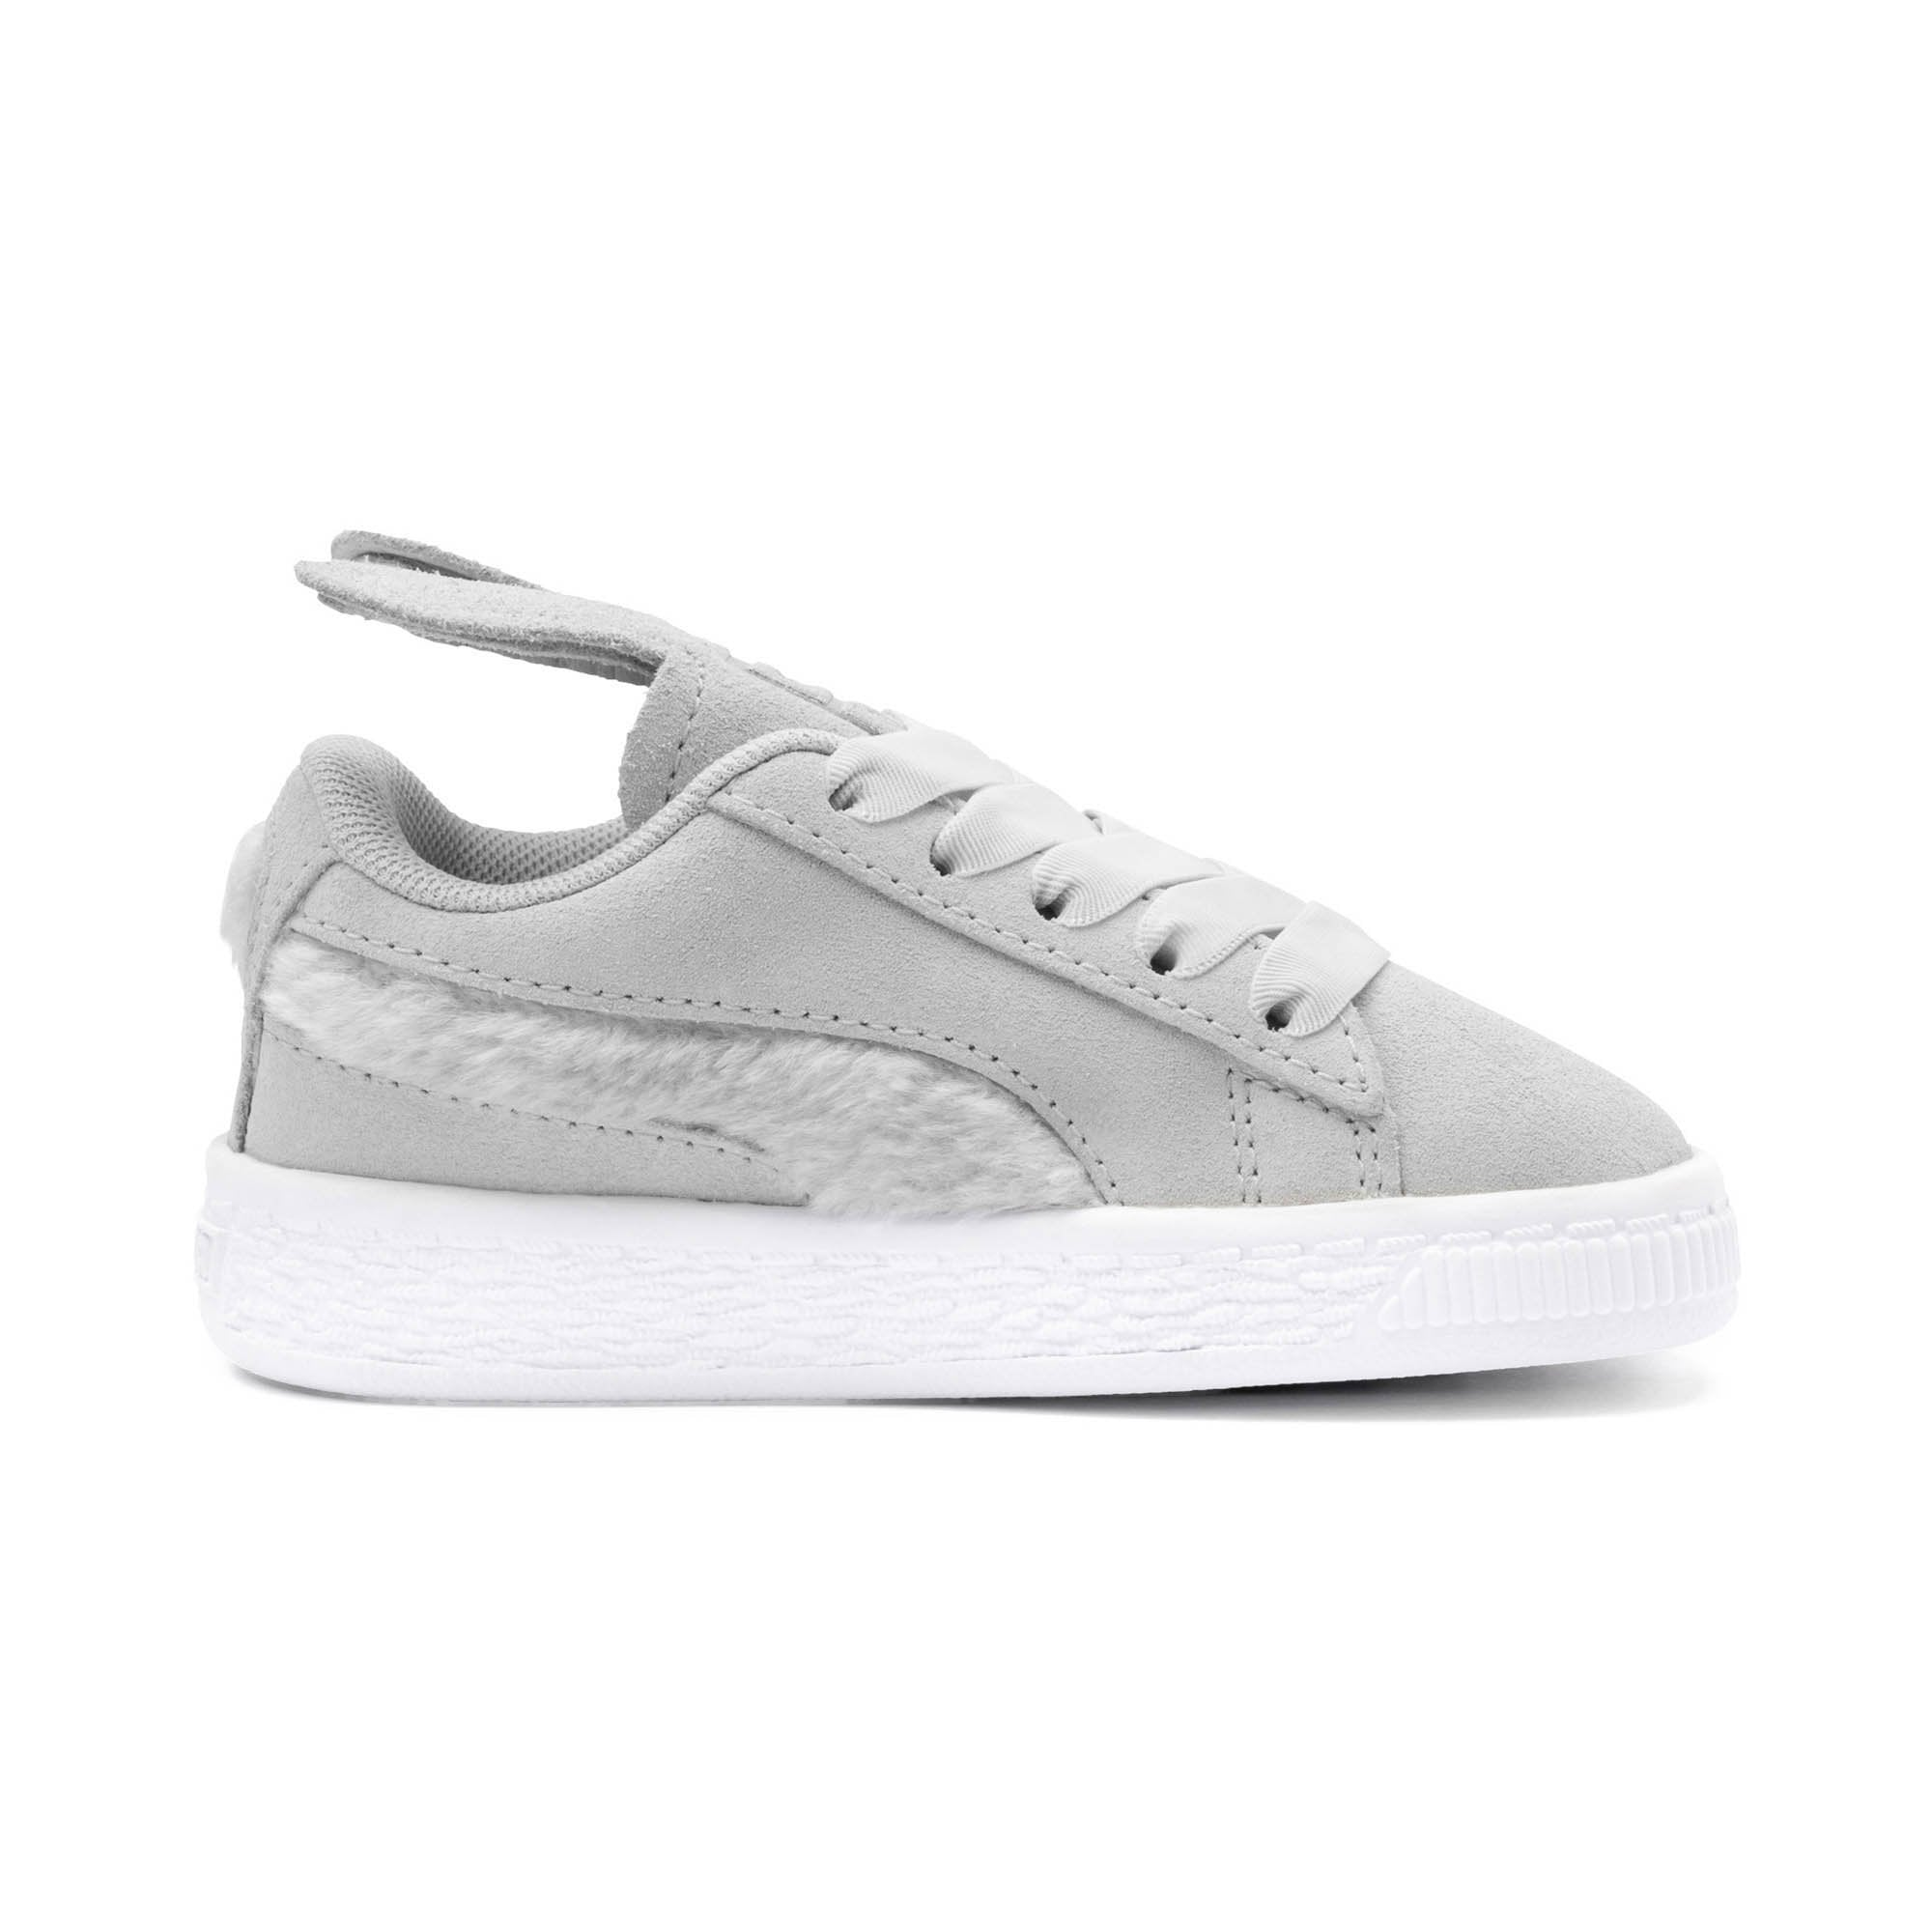 premier taux 109e8 c43af Buy Puma Girls Suede Easter Pre School Lifestyle Sneakers Online in  Singapore | Royal Sporting House